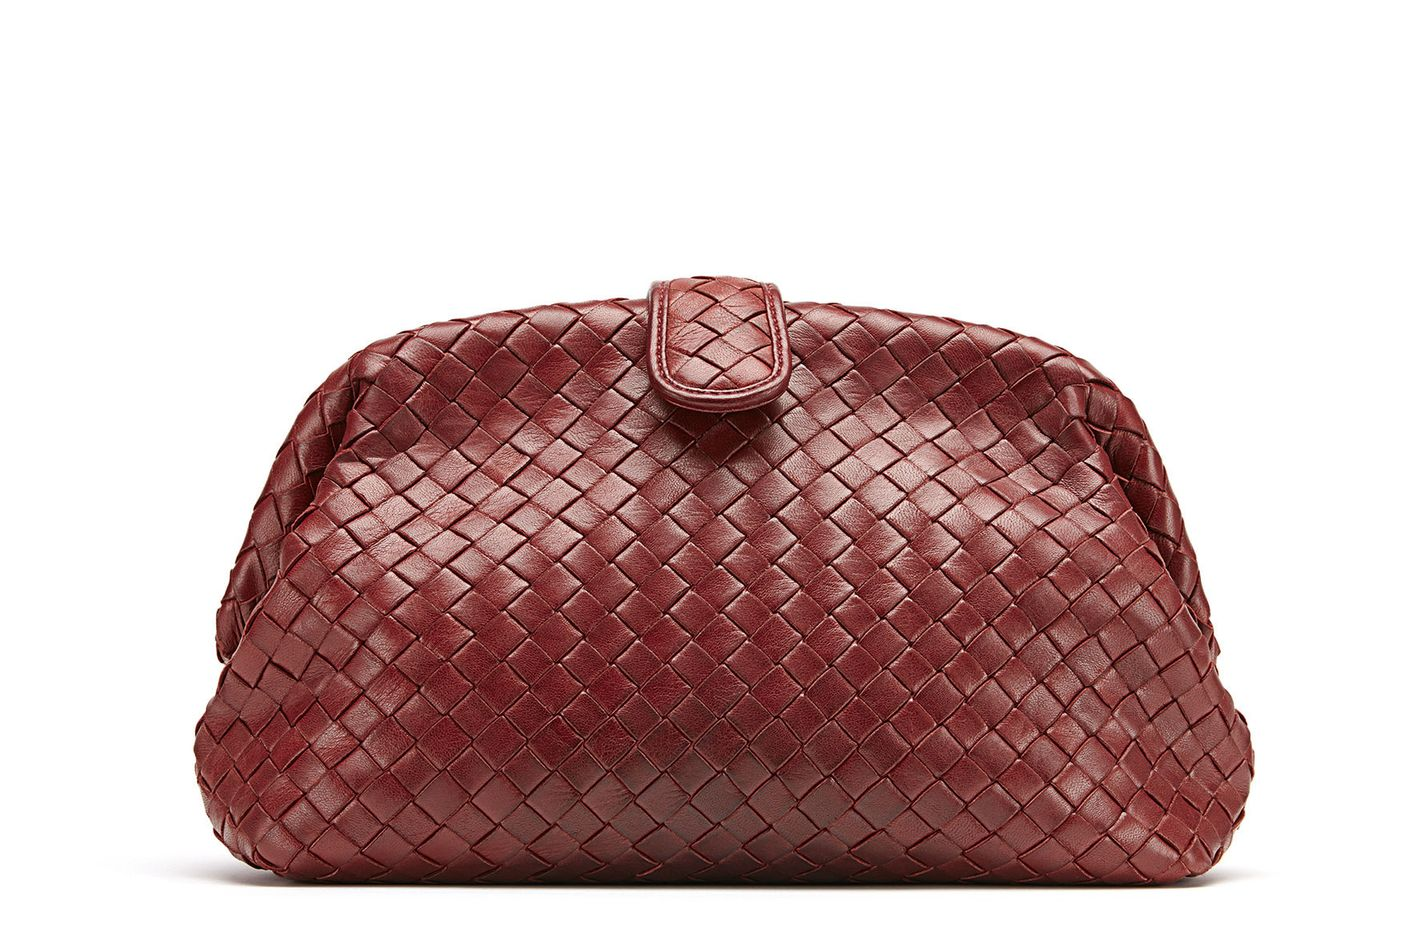 Bottega Veneta Lauren Napa Intrecciato Clutch Bag